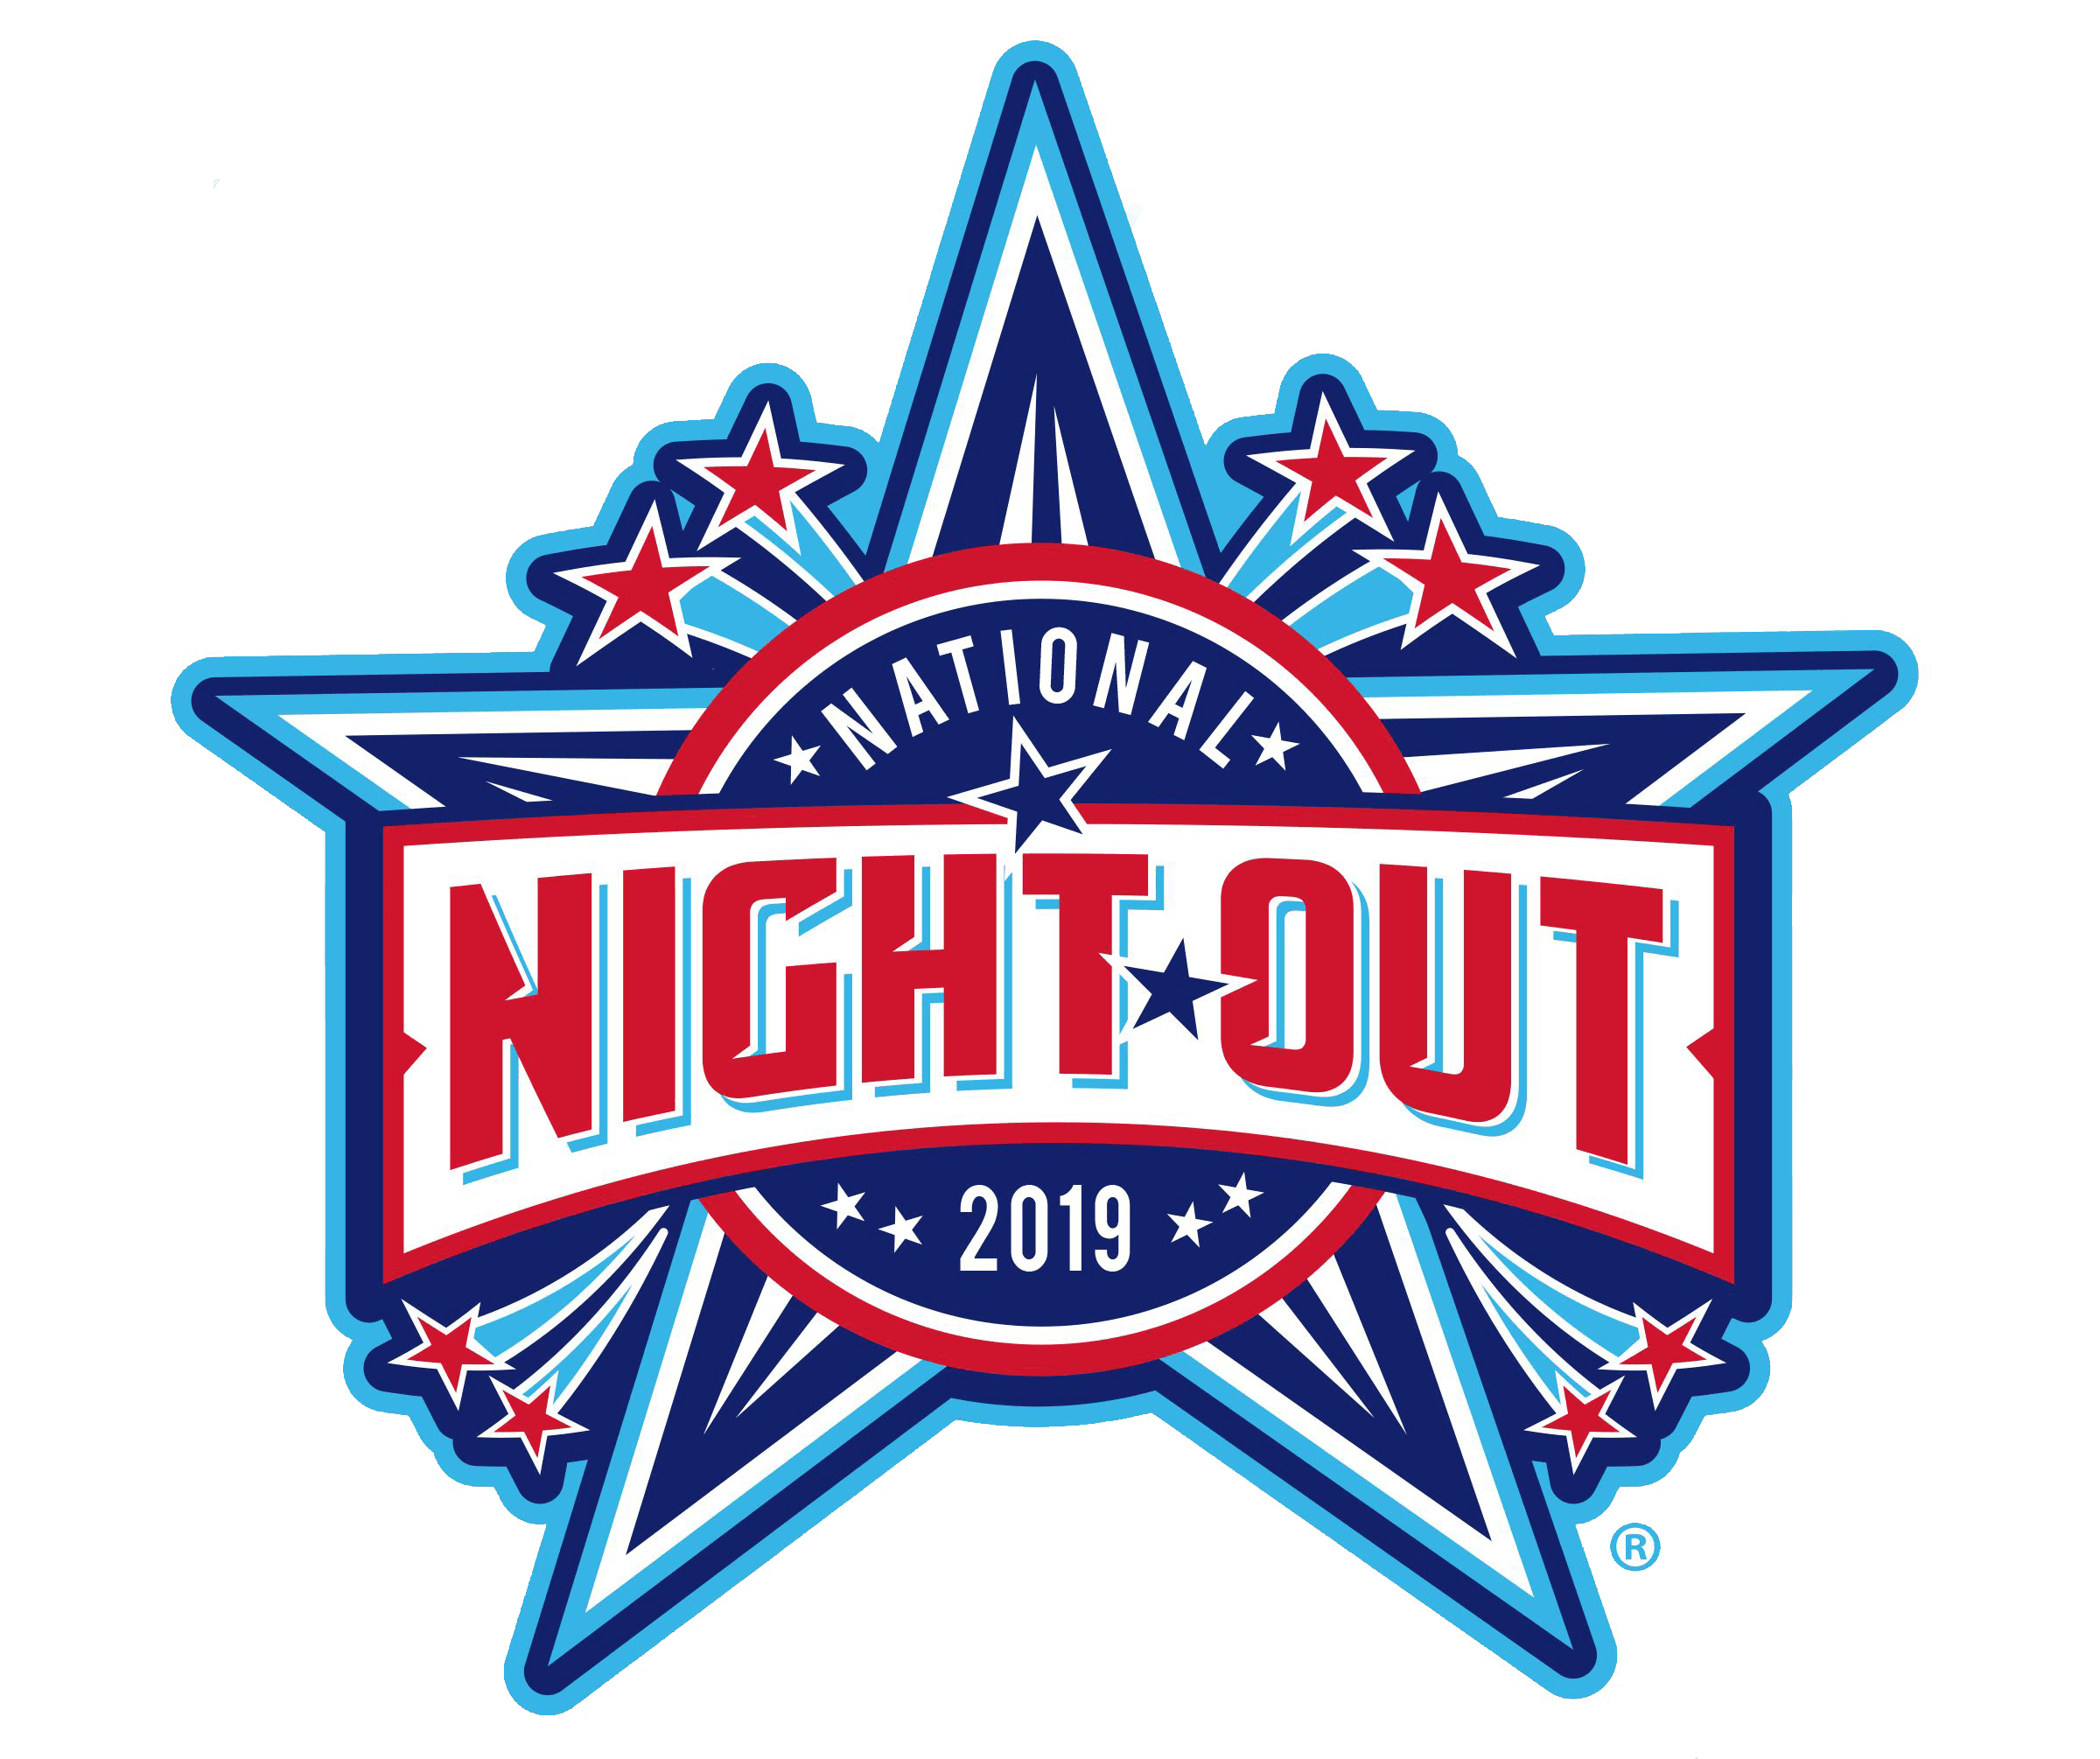 Annual National Night Out in Prosper Set for October 1